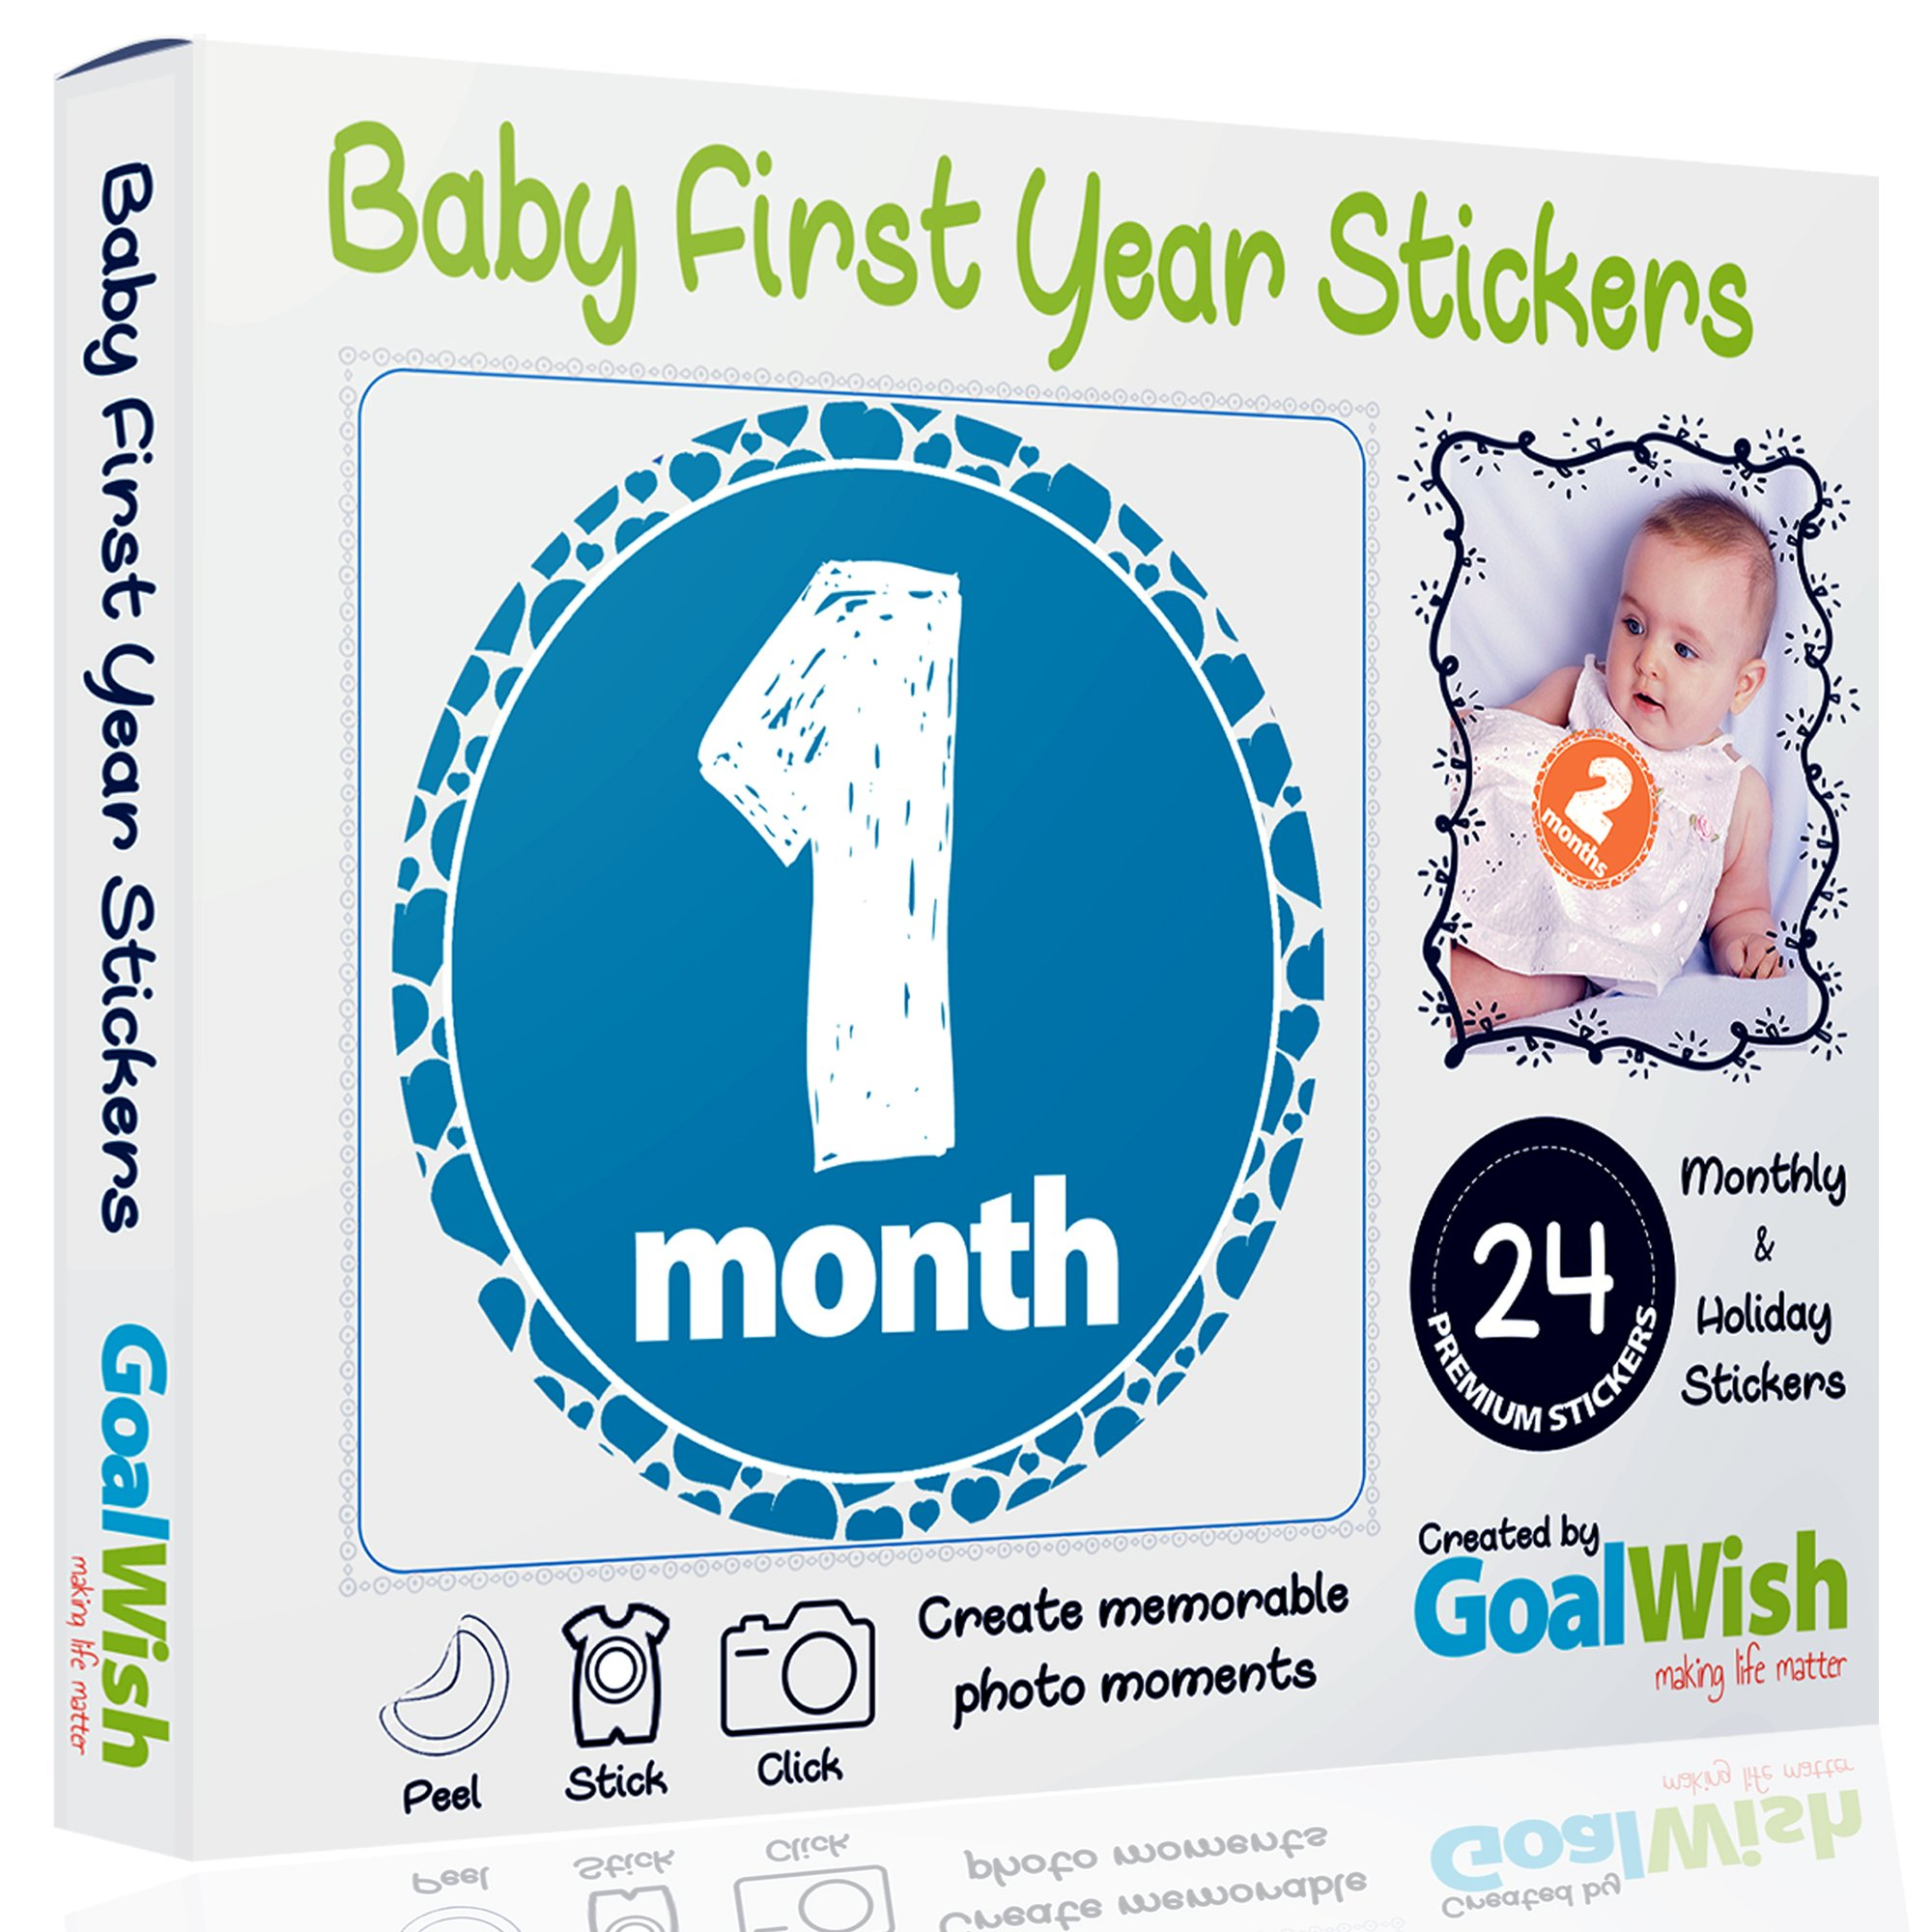 Baby Monthly Stickers - Pack of Premium 24 Unisex First Year Stickers for Boys and Girls - 12 Baby Monthly Stickers + 12 Baby Milestone Stickers - Perfect Baby Shower Gift, Newborn Birthday